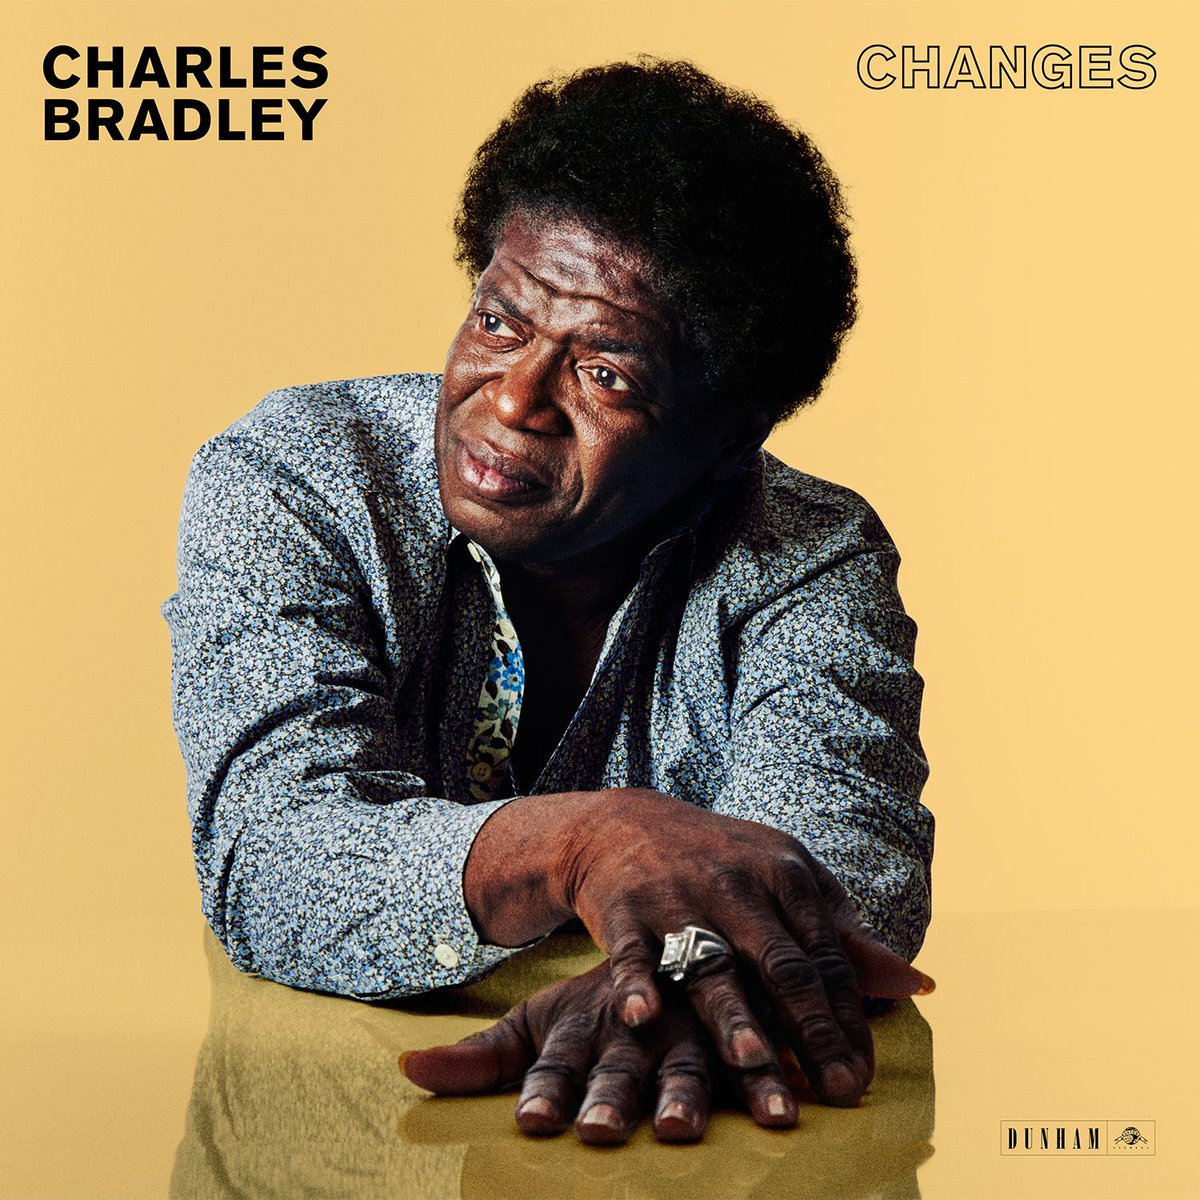 Changes is out April 1st! https://t.co/BVhzxhtGAf. RT to win an autographed test pressing #charlesforchange https://t.co/NDiTNItDhz